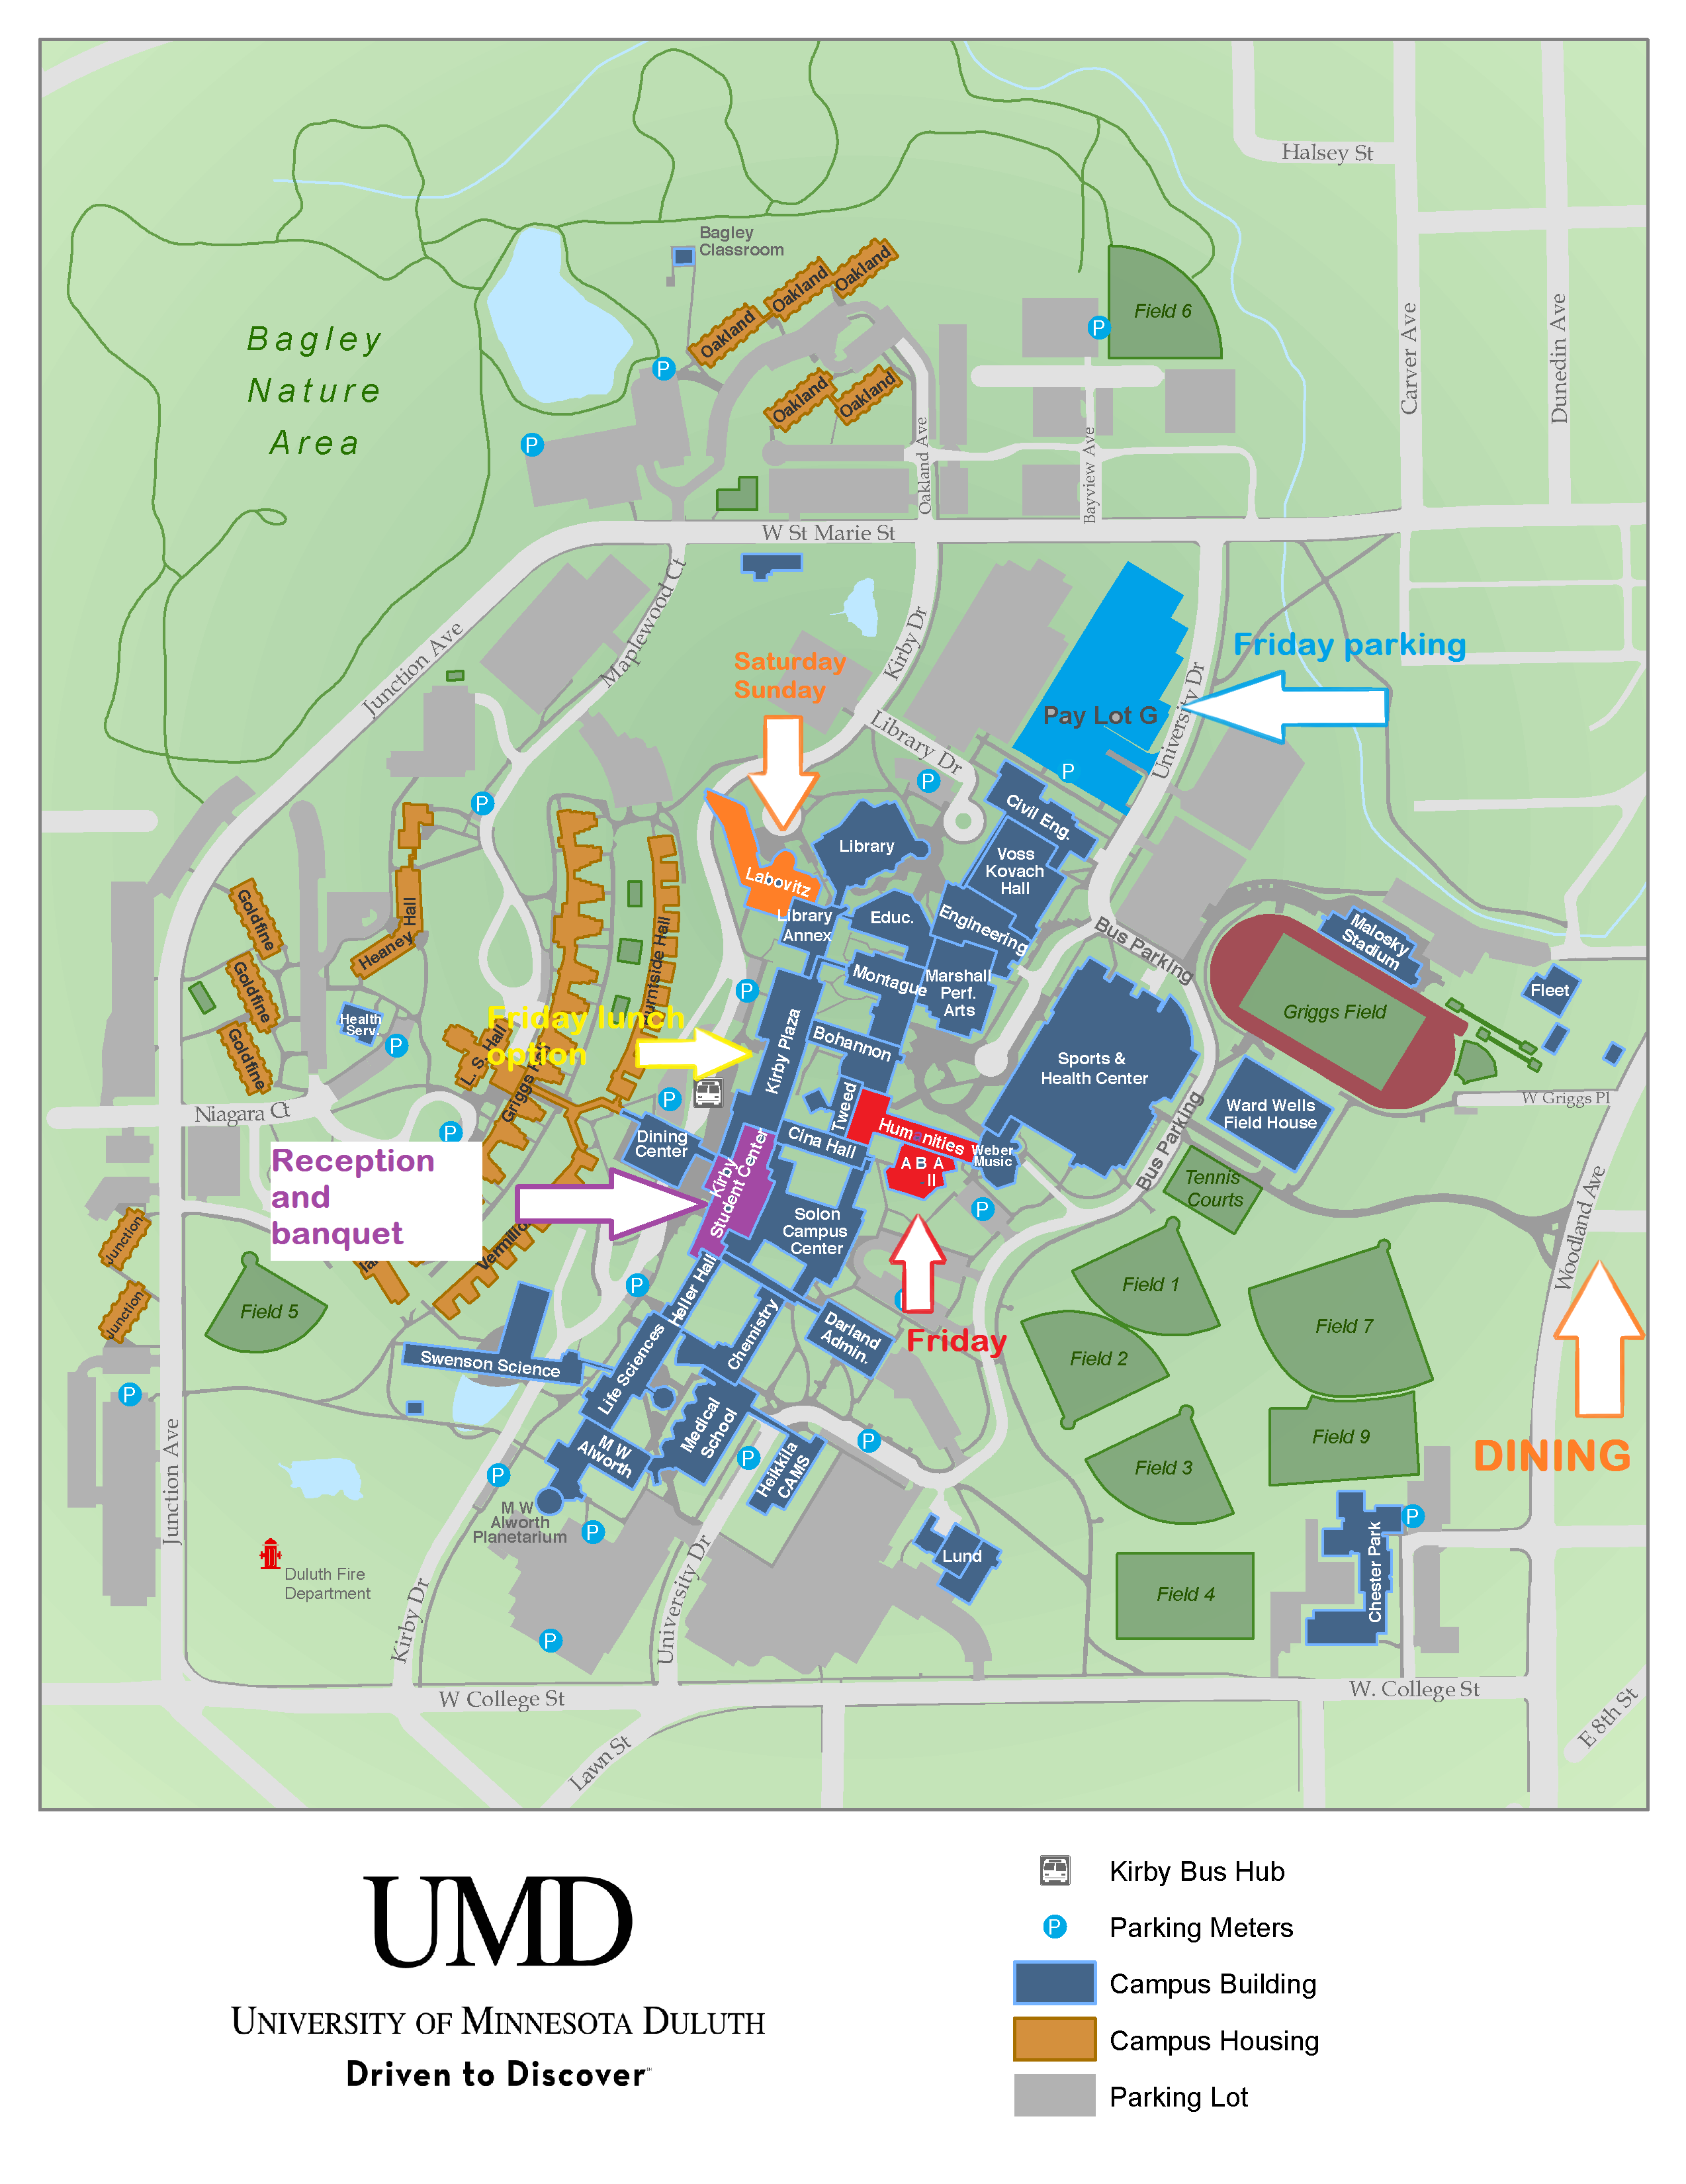 um duluth campus map Umd Campus Swenson College Of Science And Engineering Umn Duluth